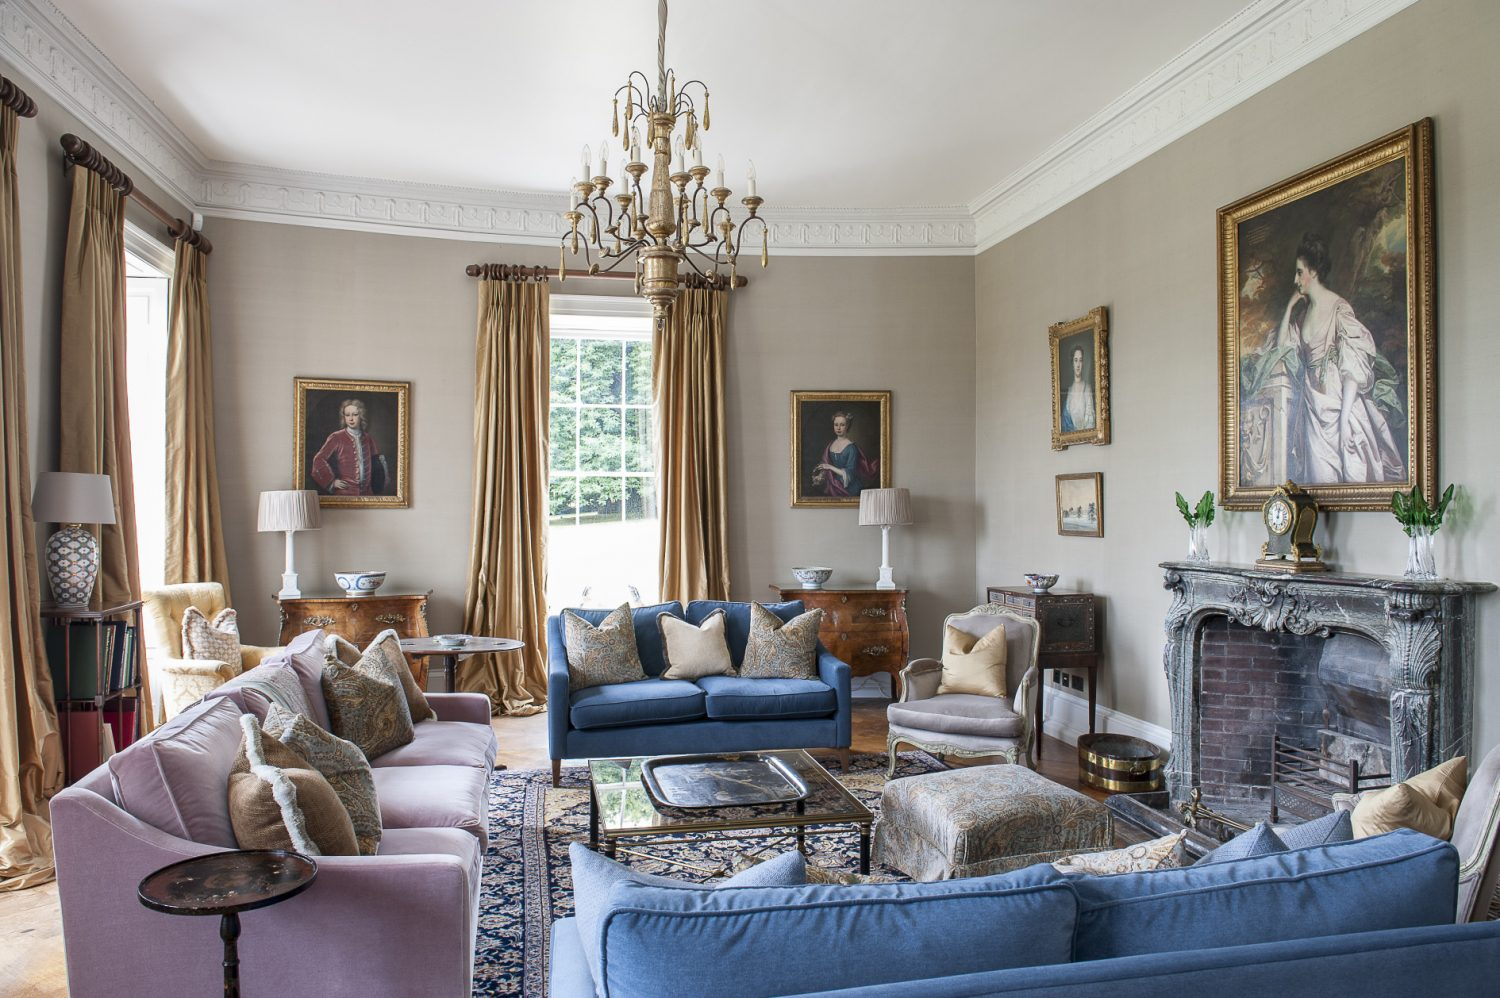 The drawing room walls are clad in de Gournay silk. The painting over the mantlepiece is of Jane Austen's favourite niece Fanny Bridges. The sofas are from sofa.com